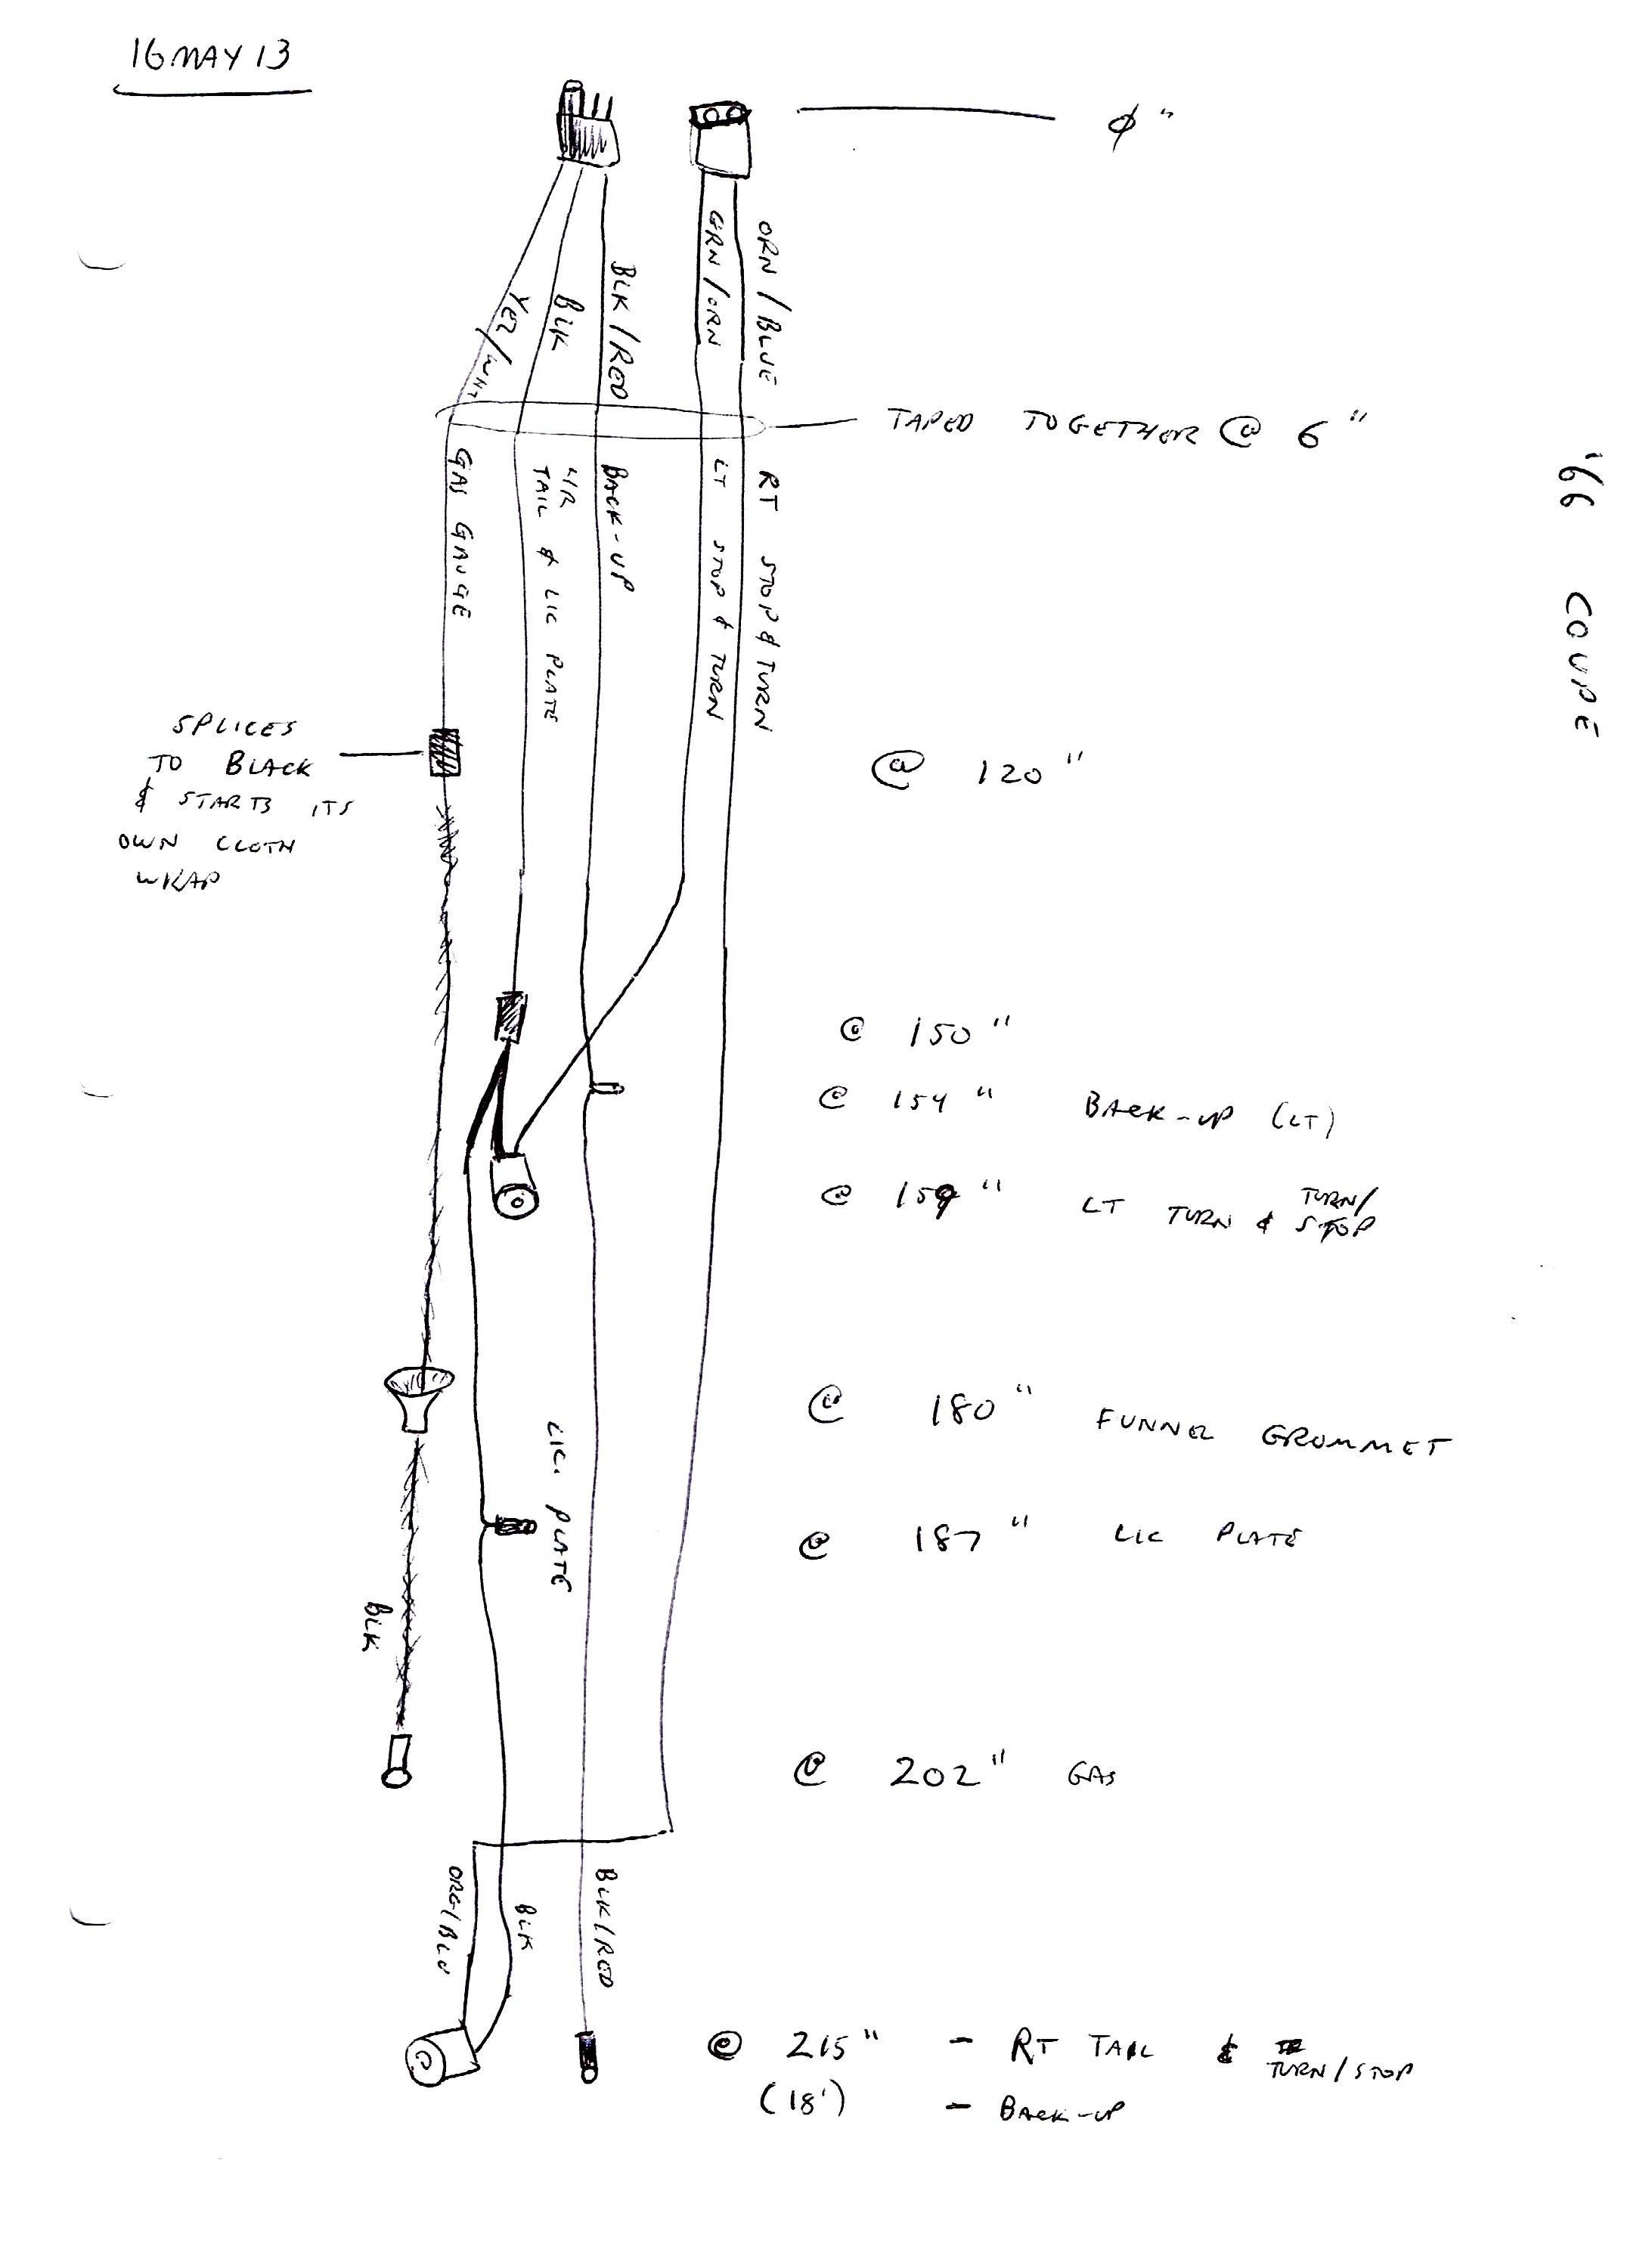 66 Mustang Gauge Wiring Diagram